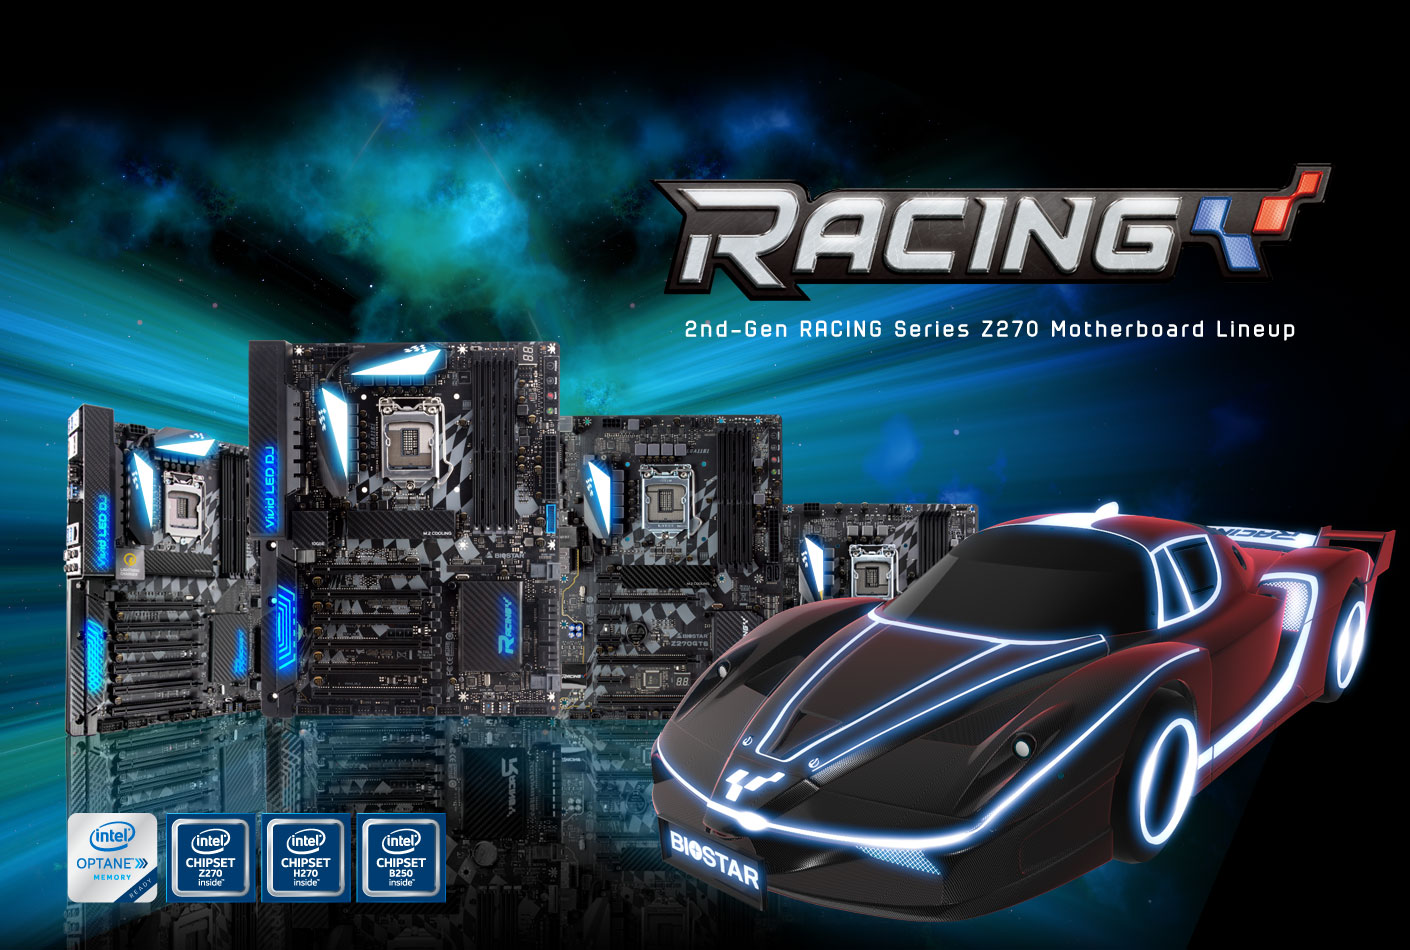 Z270gt4 Ver 5x Best Intel Motherboard For Desktop Pc Biostar Mashpedia Top Videos About List Of 7400 Series Integrated Circuits Beyond Better Racing To The Future